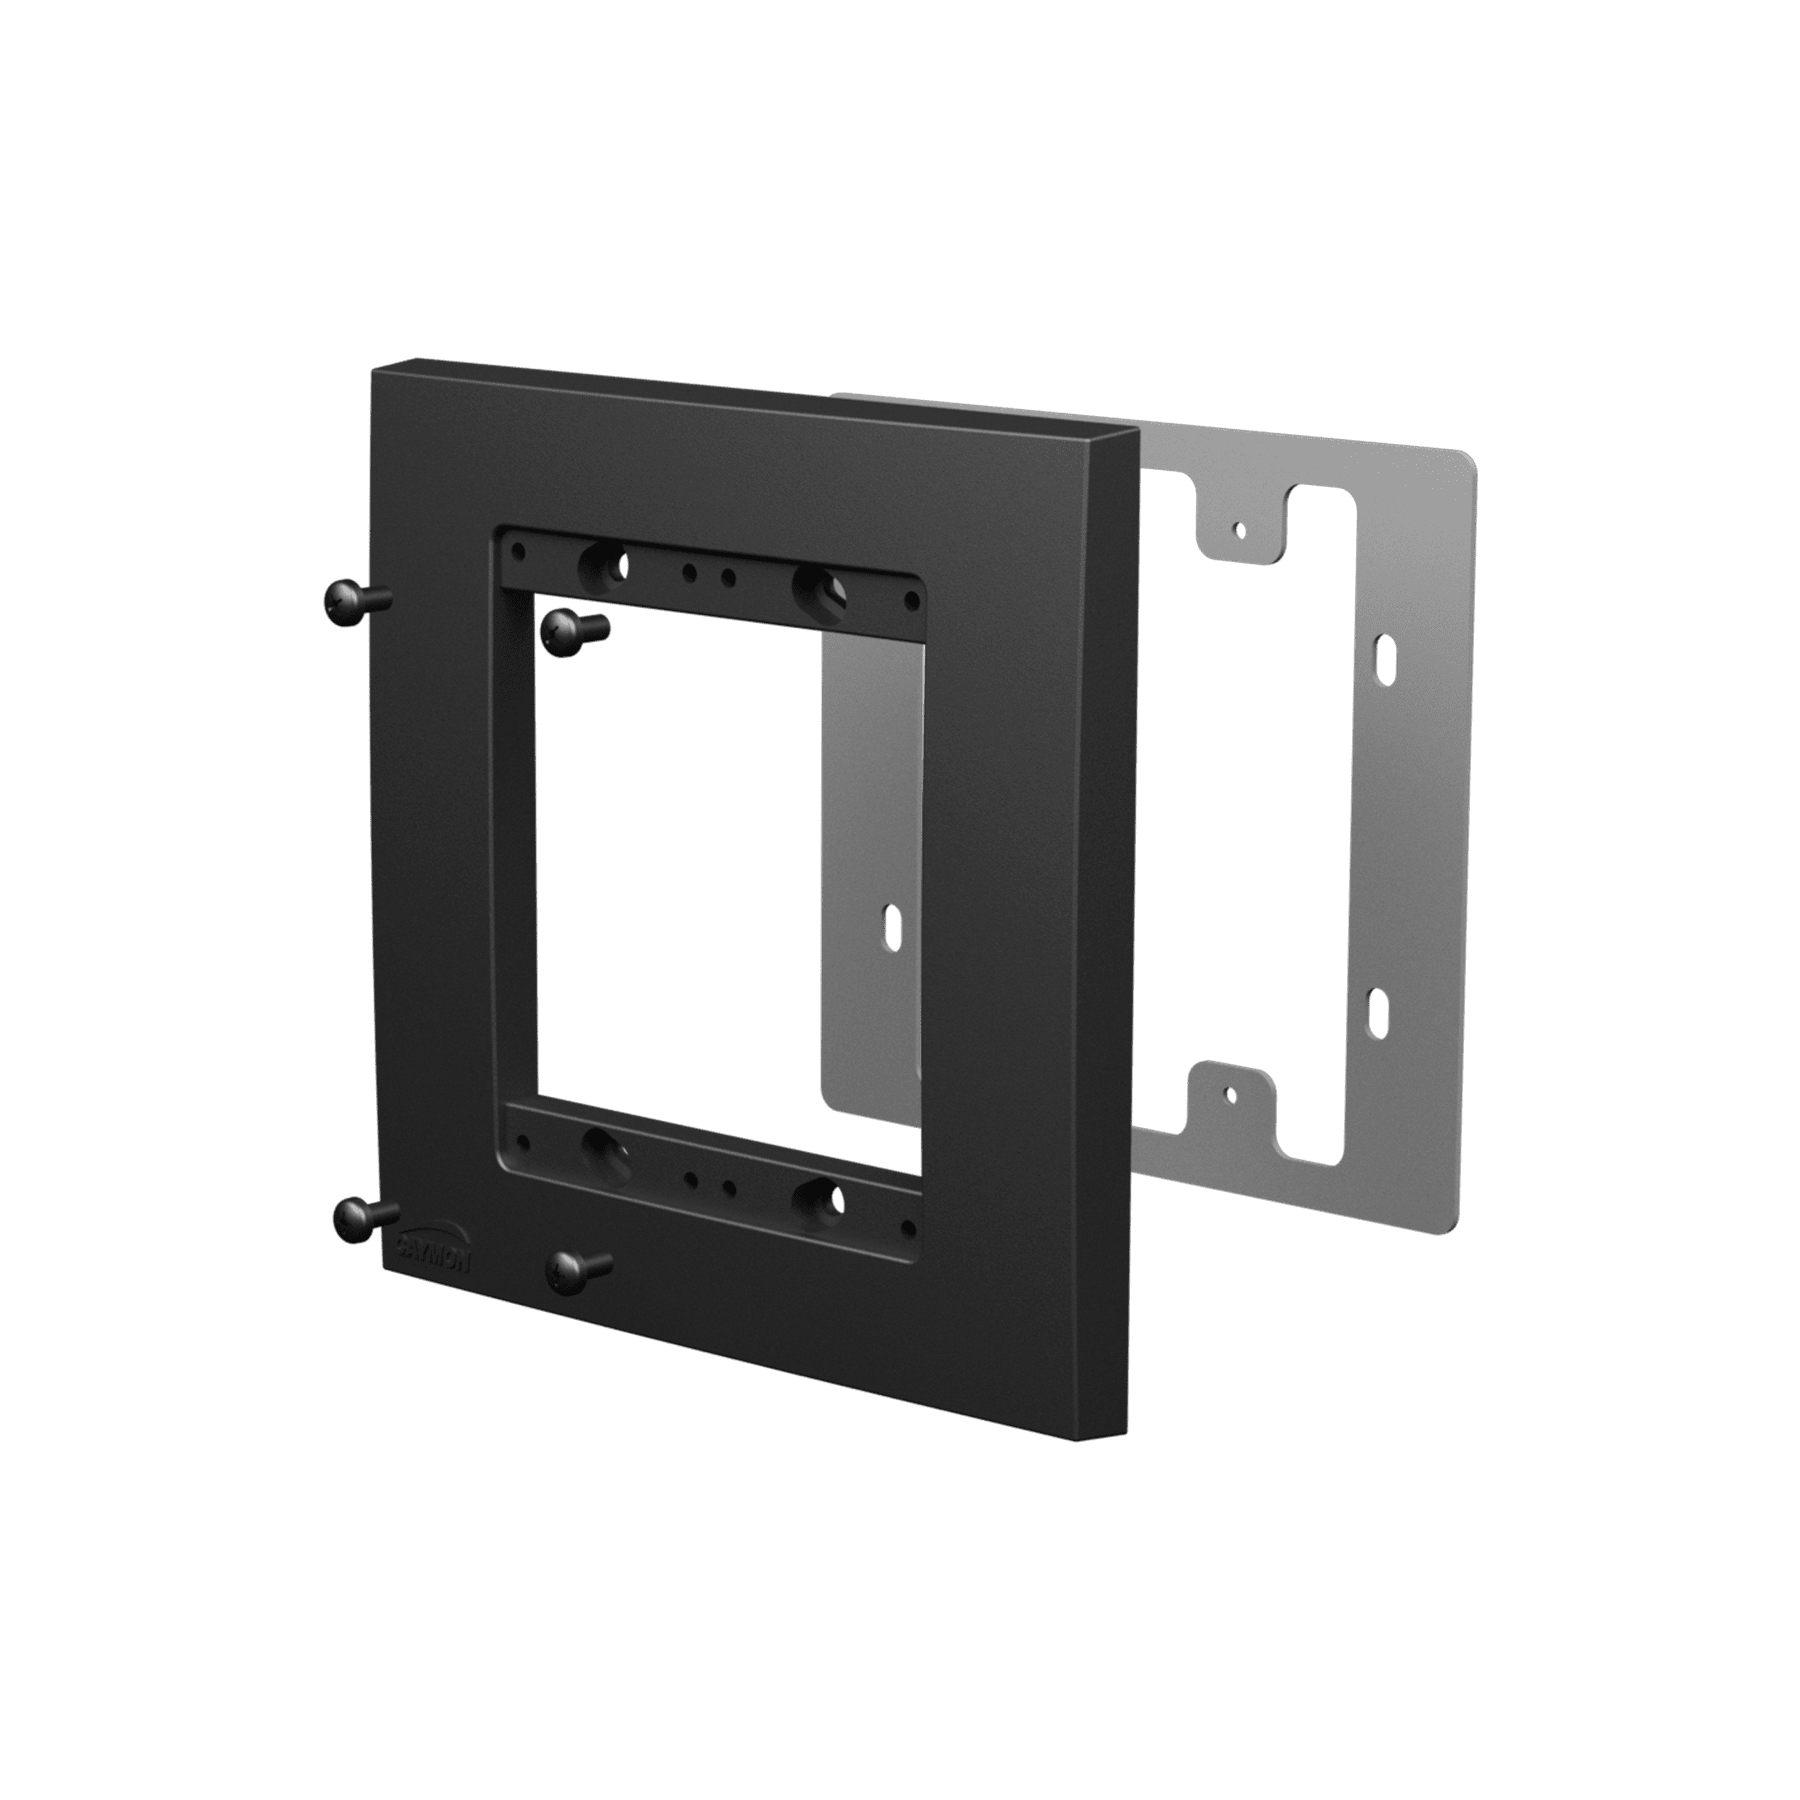 CASY052 - CASY in-wall frame - 2 space